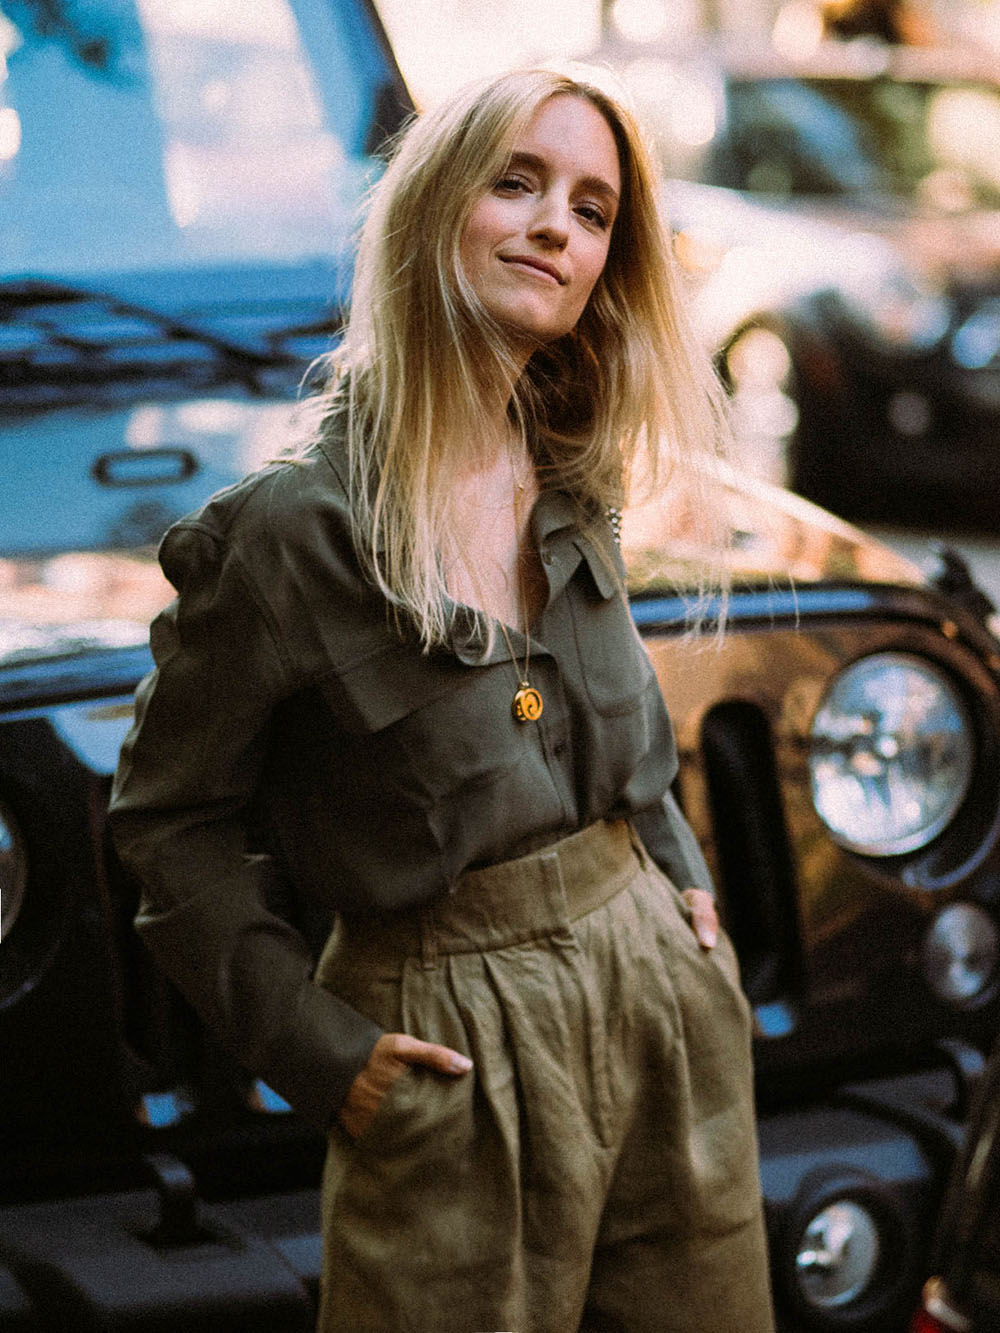 90s Safari Vogue style by Charlotte Groeneveld from Thefashionguitar